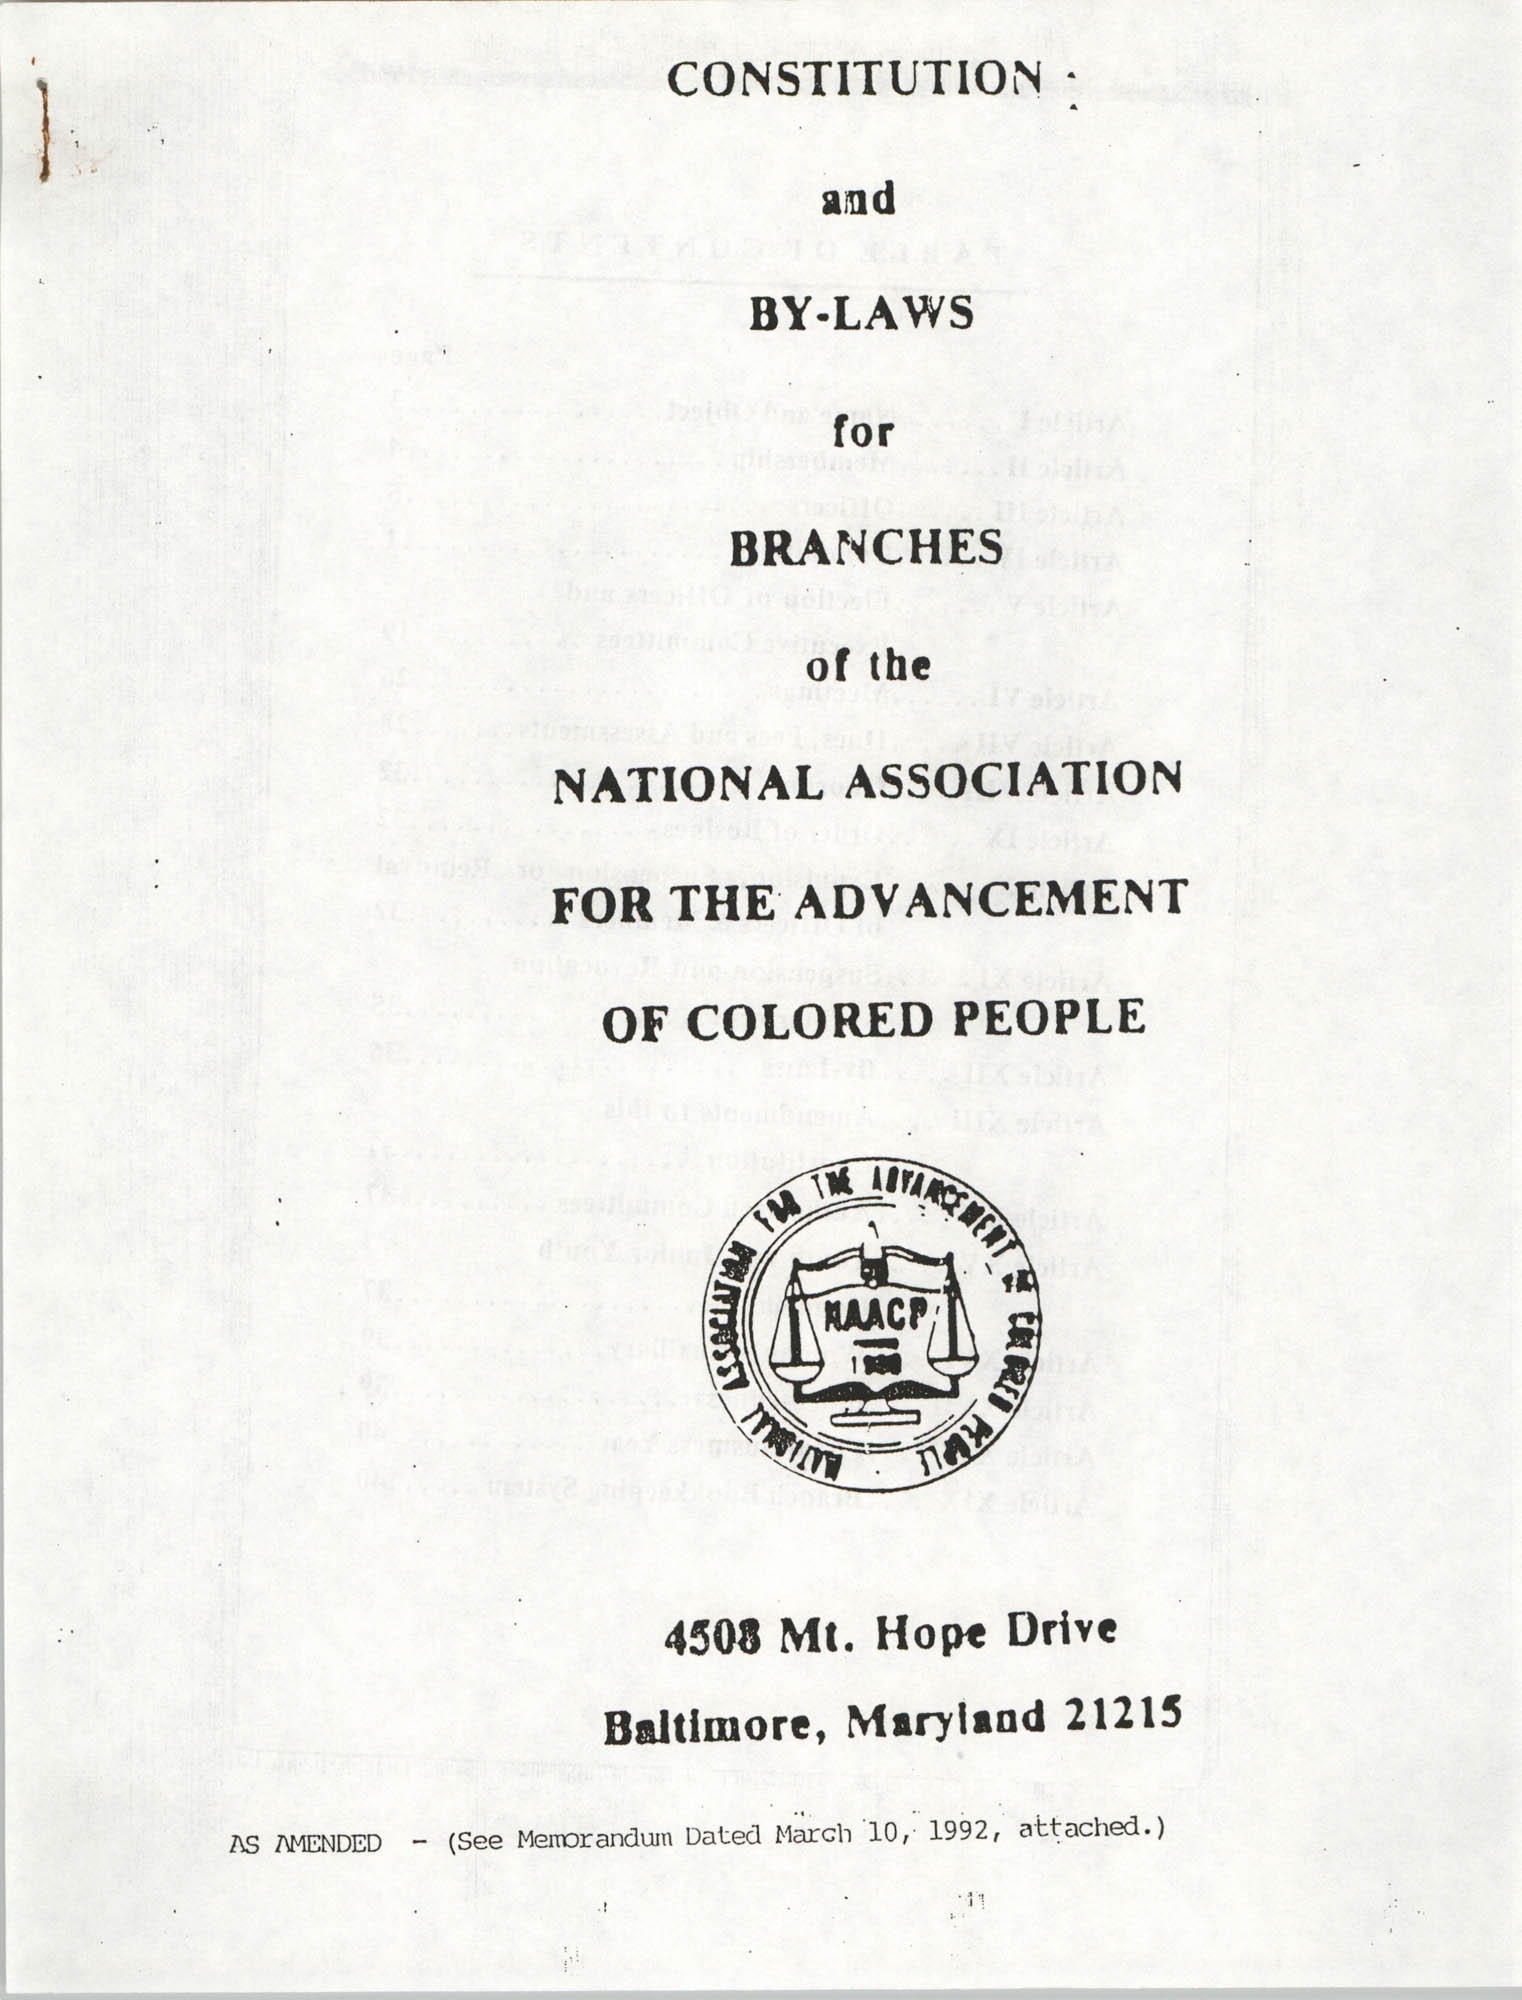 Constitution and By-Laws for Branches of the NAACP, March 1992